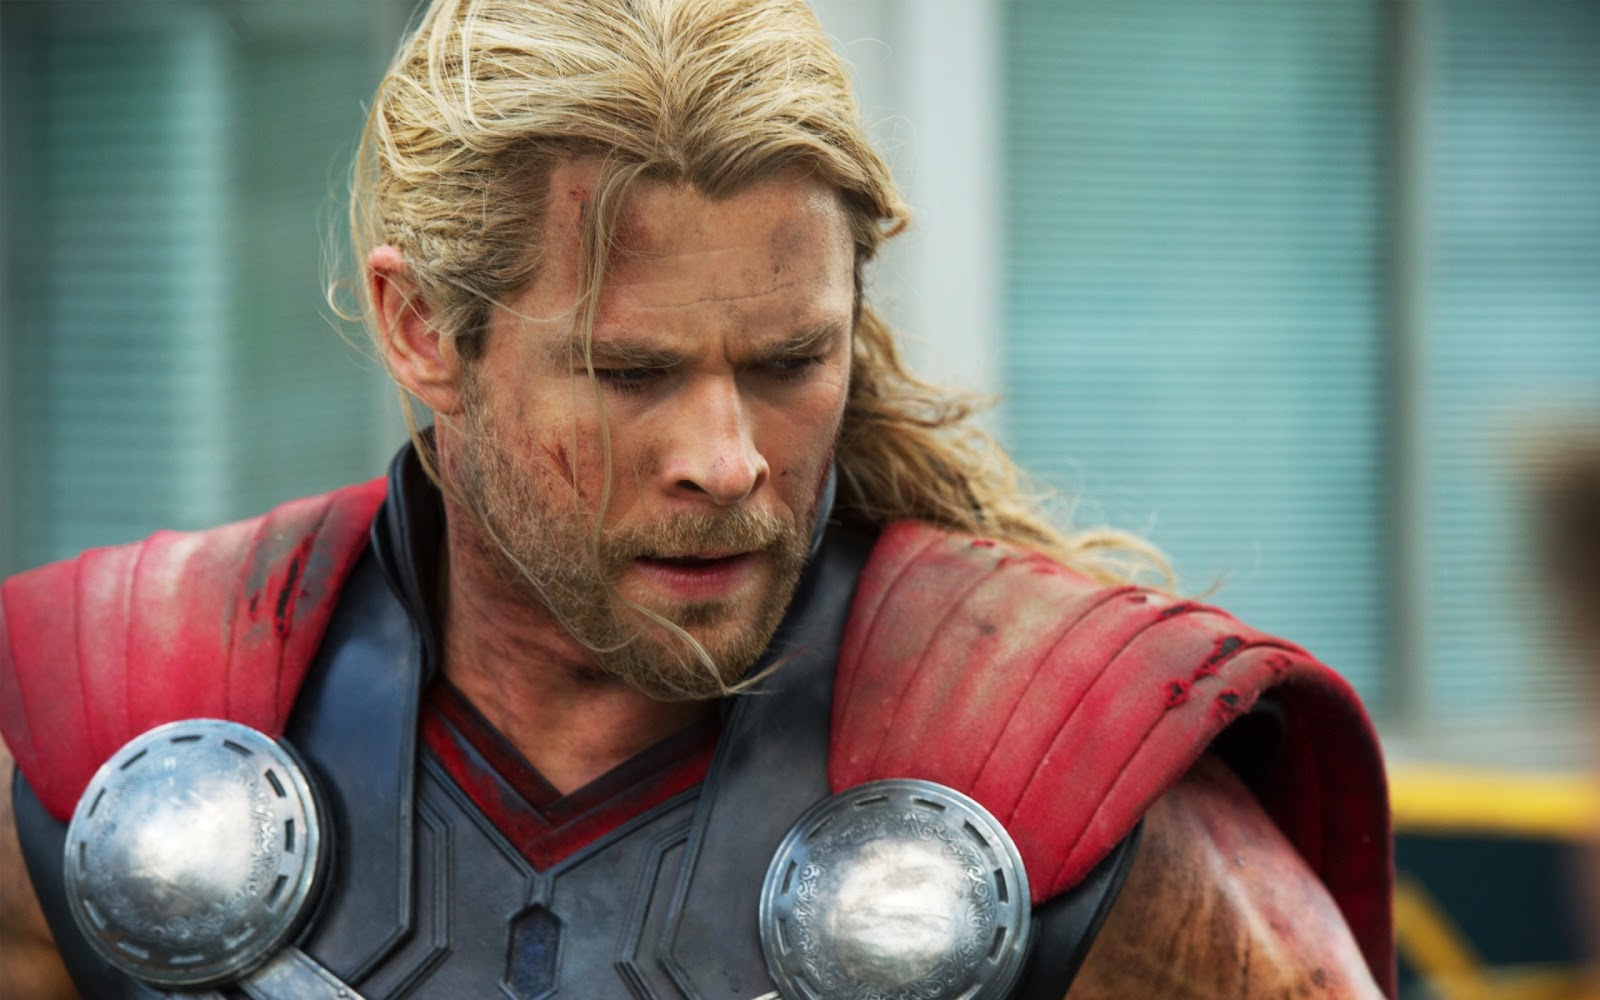 Chris Hemsworth Thor Avengers Wallpaper